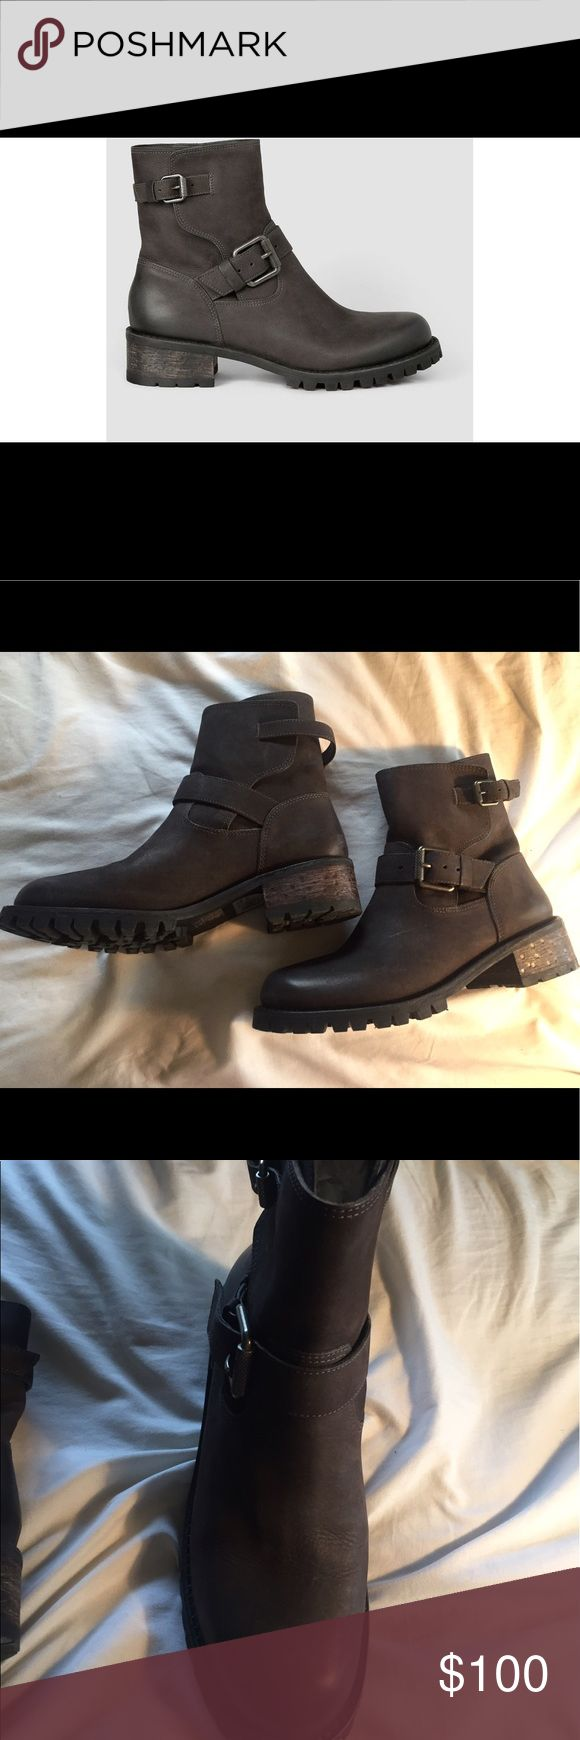 NIB ALLSAINTS Shoreditch Buckle Brown Boots 8.5 Buckle boots, block heel, round toe 100% leather made in Brazil. Never worn, only tried on in store. Retailed for $540, priced to sell quick! All Saints Shoes Combat & Moto Boots